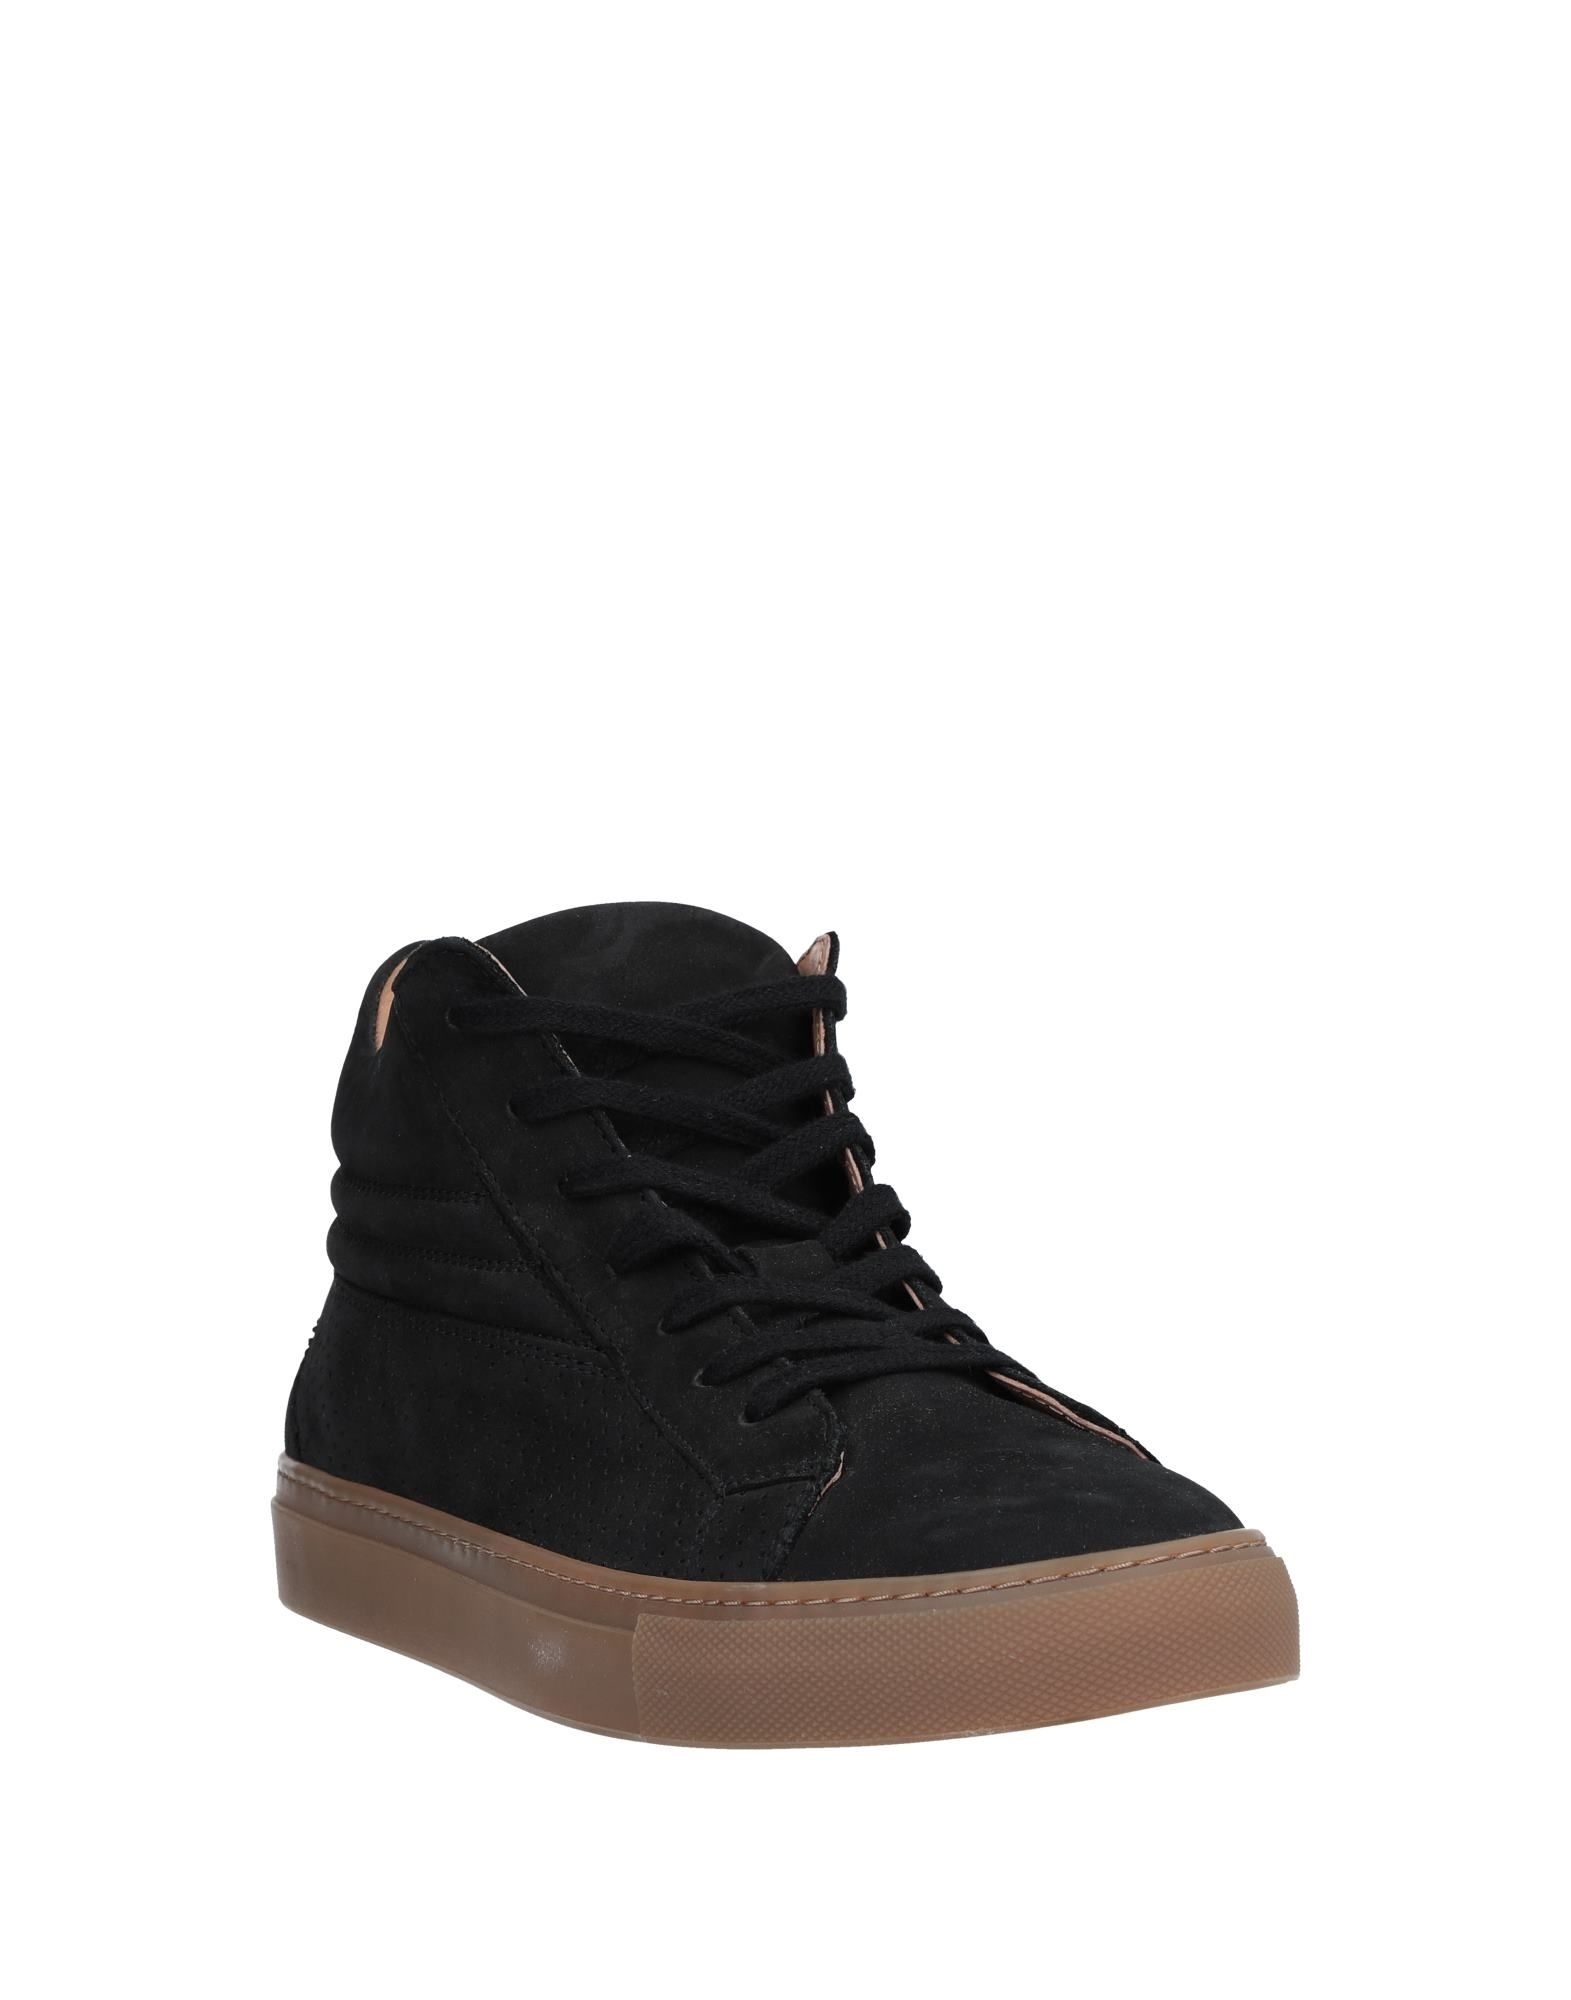 Sneakers Homme Selected Homme Sneakers Uomo - 11537175XA 0e3f1c